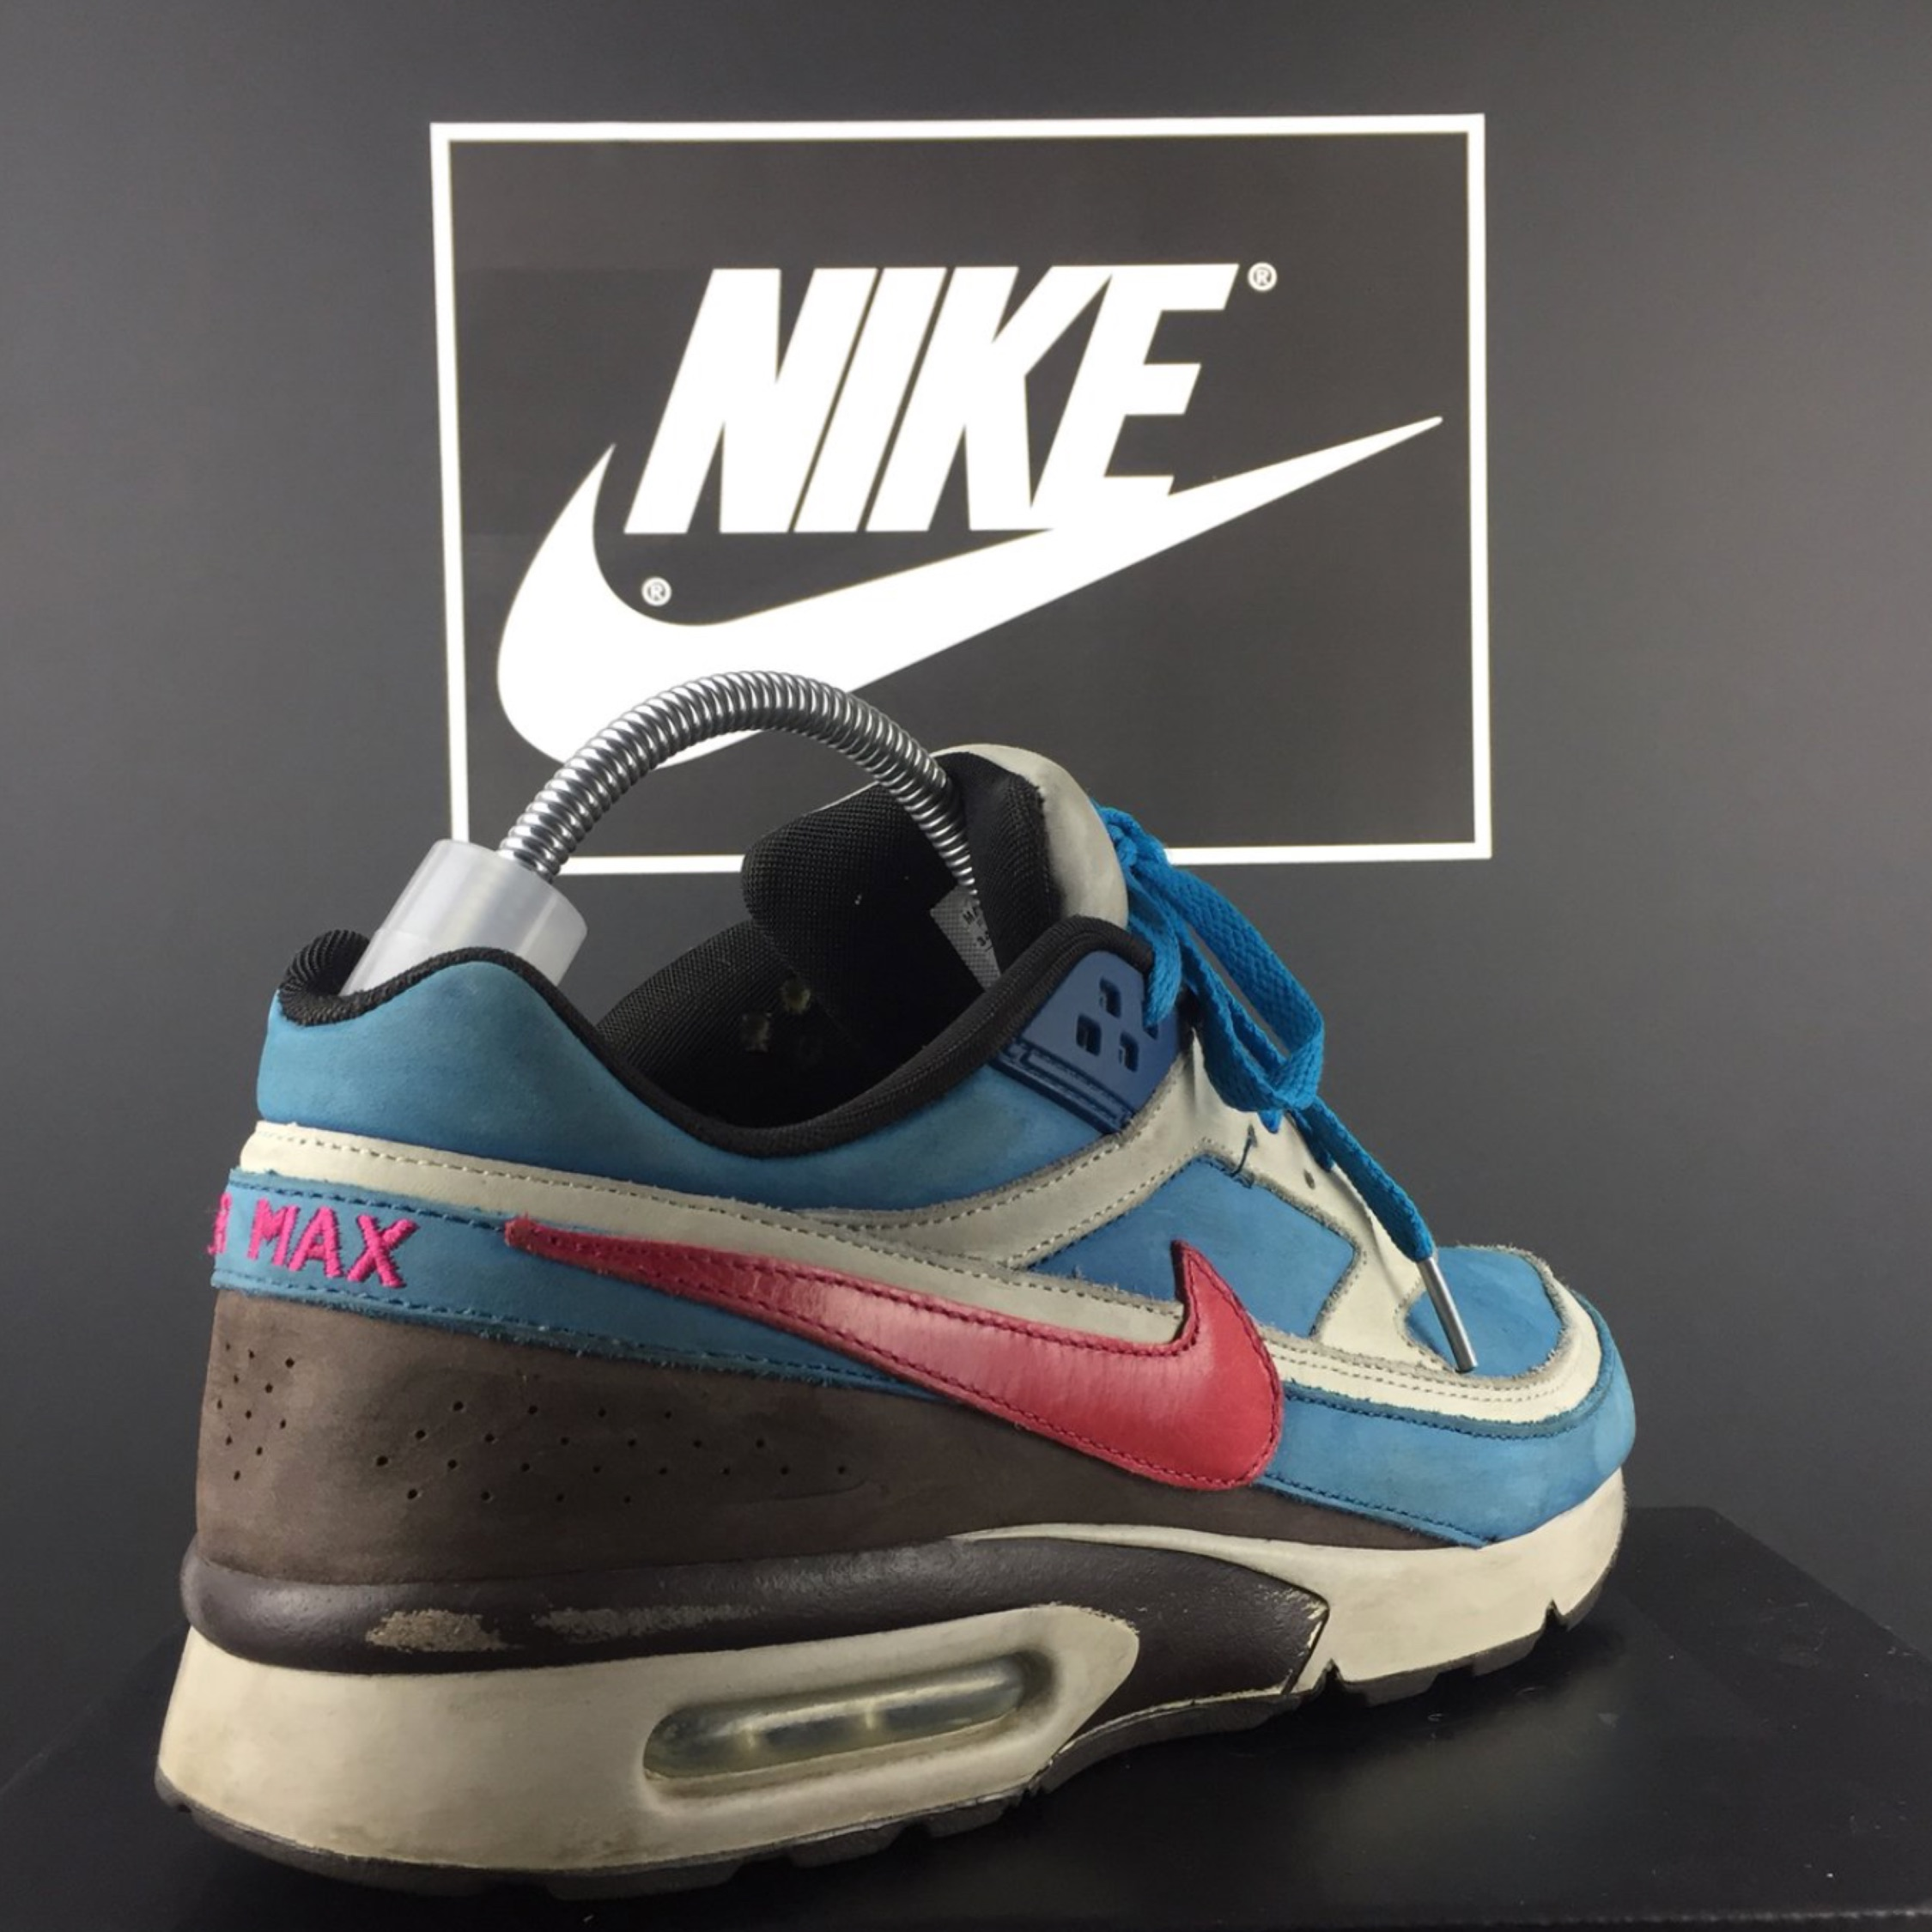 2008 Nike Air Max Bw Classic - Uk 10